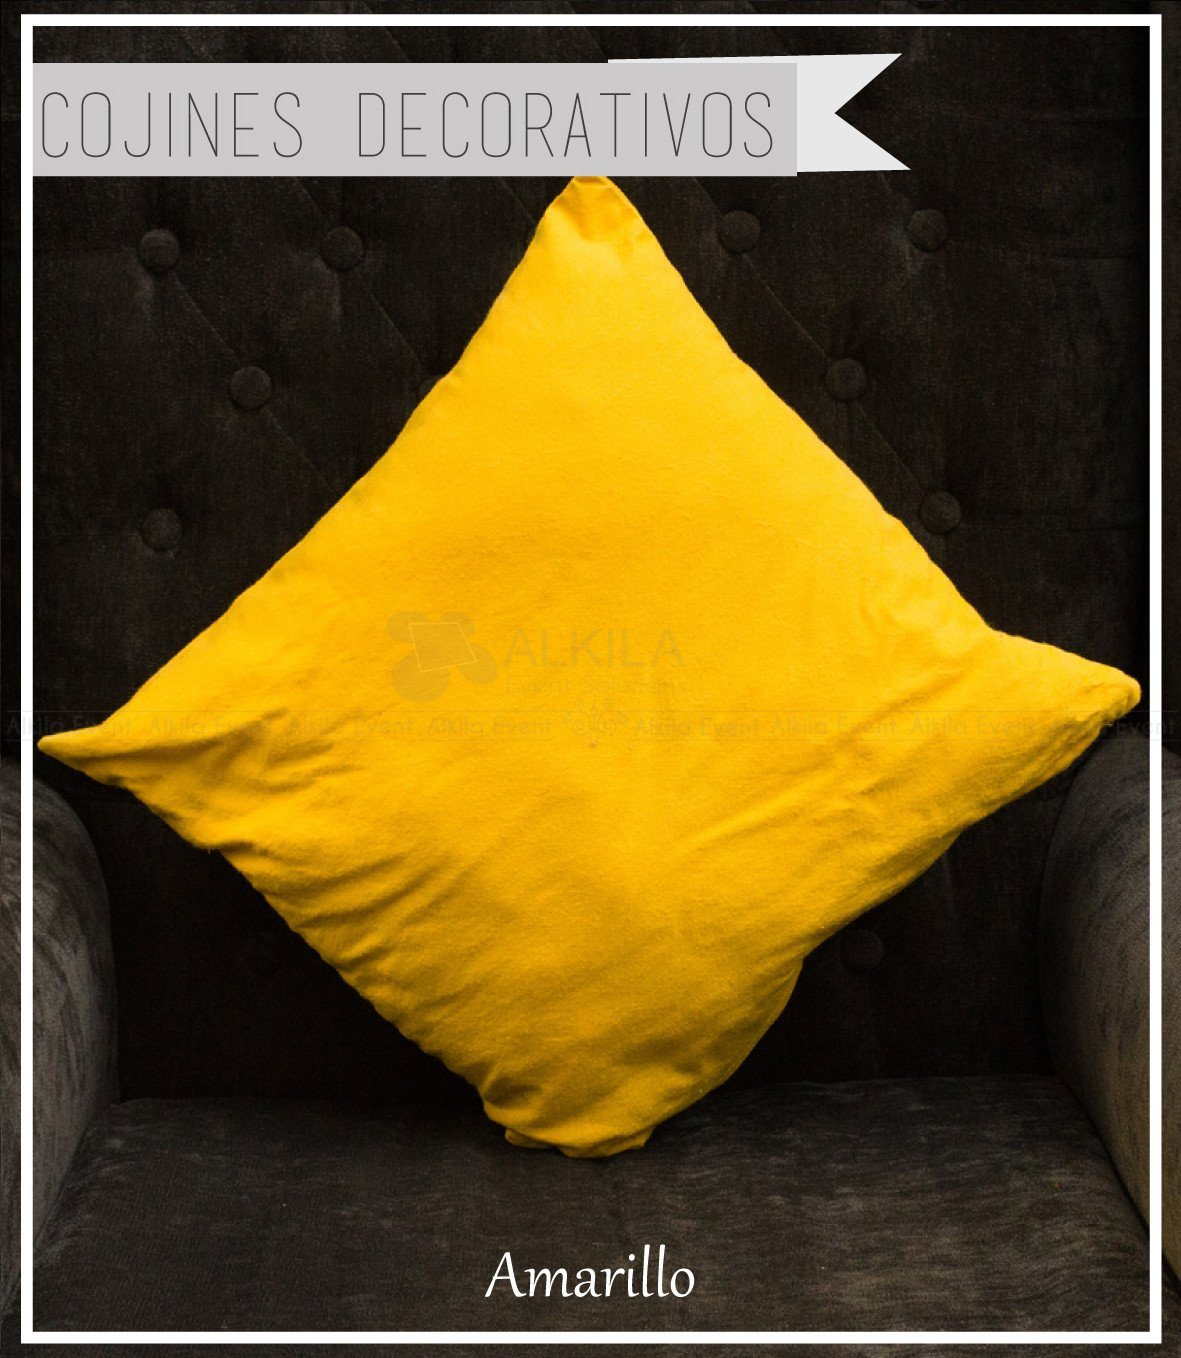 Cojín Decorativo color Amarillo (42cm x 42cm)